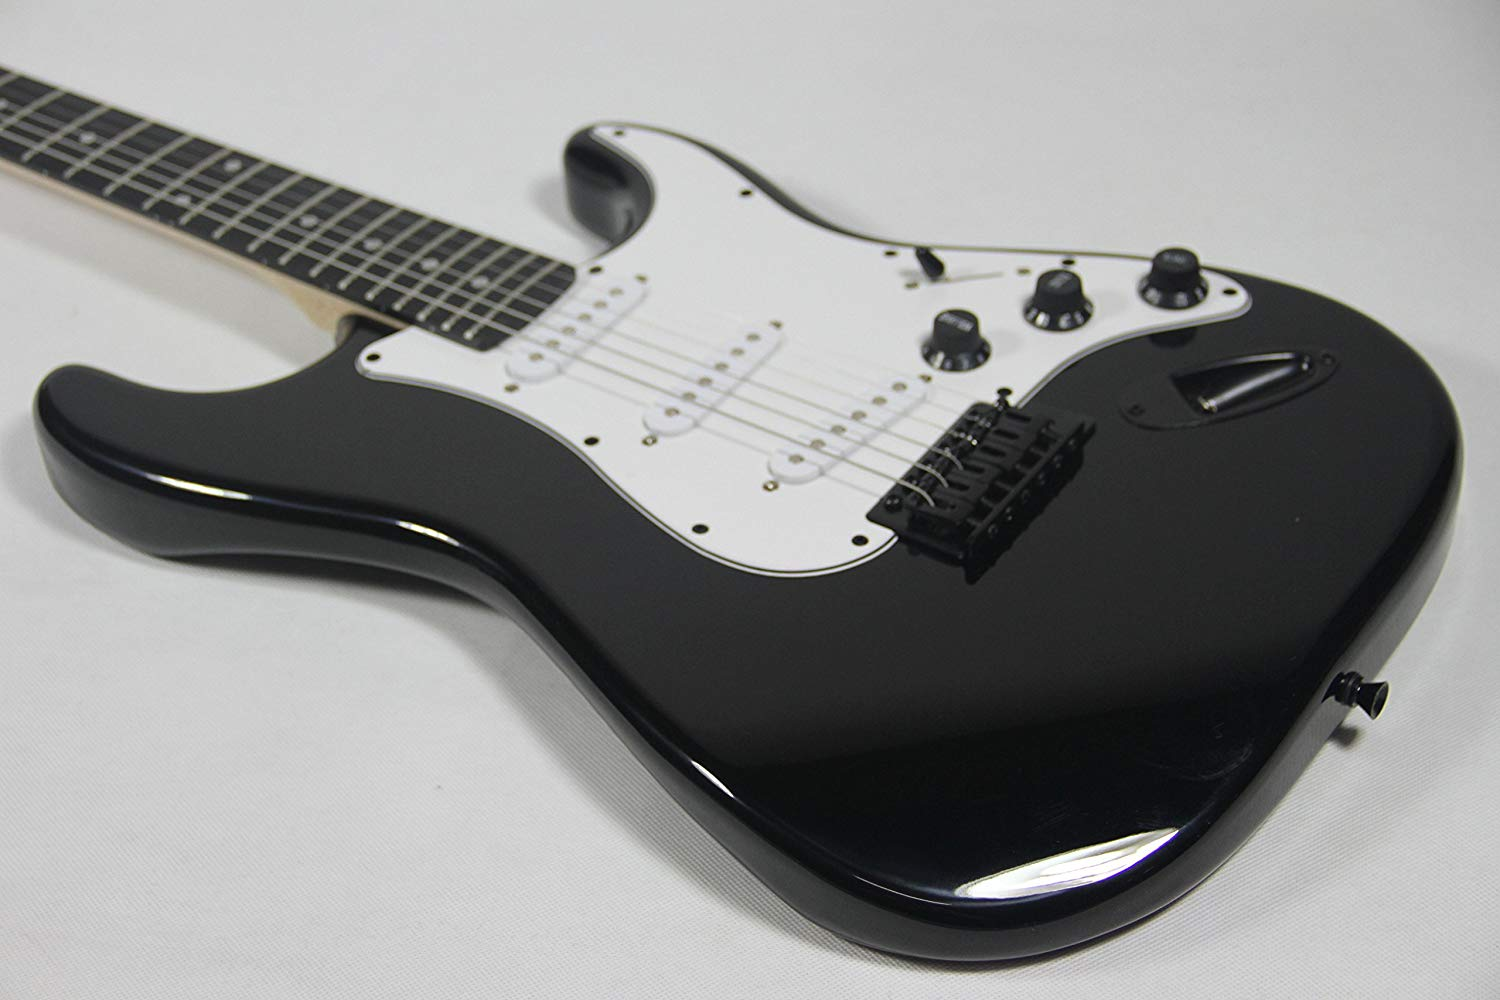 Showing just the Black LyxPro Electric Guitar